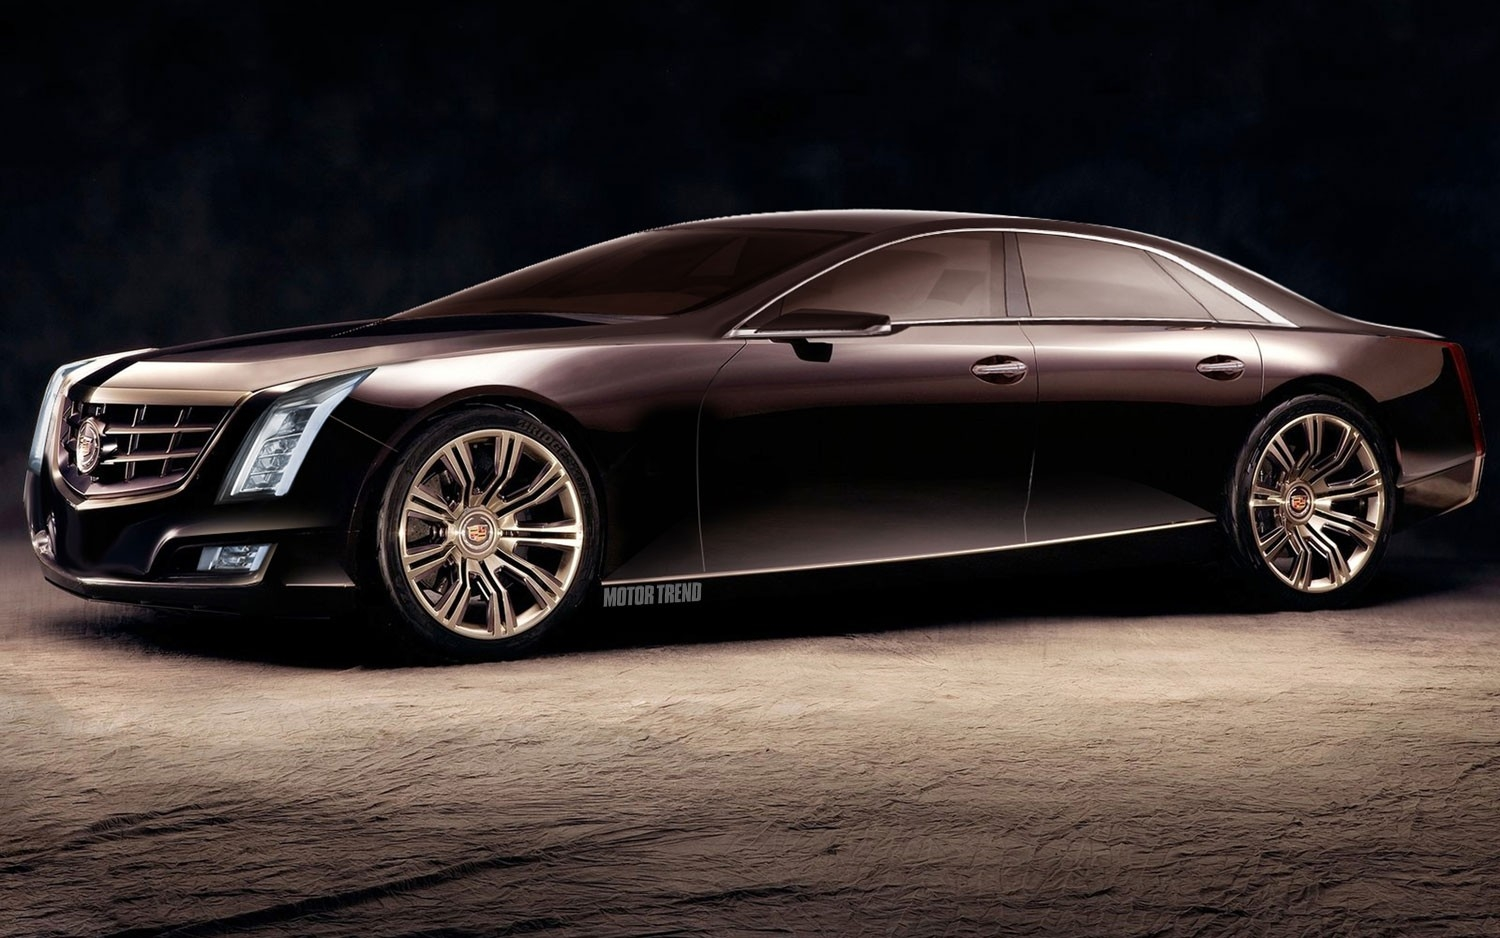 69 The Best 2020 Cadillac Deville Coupe New Review